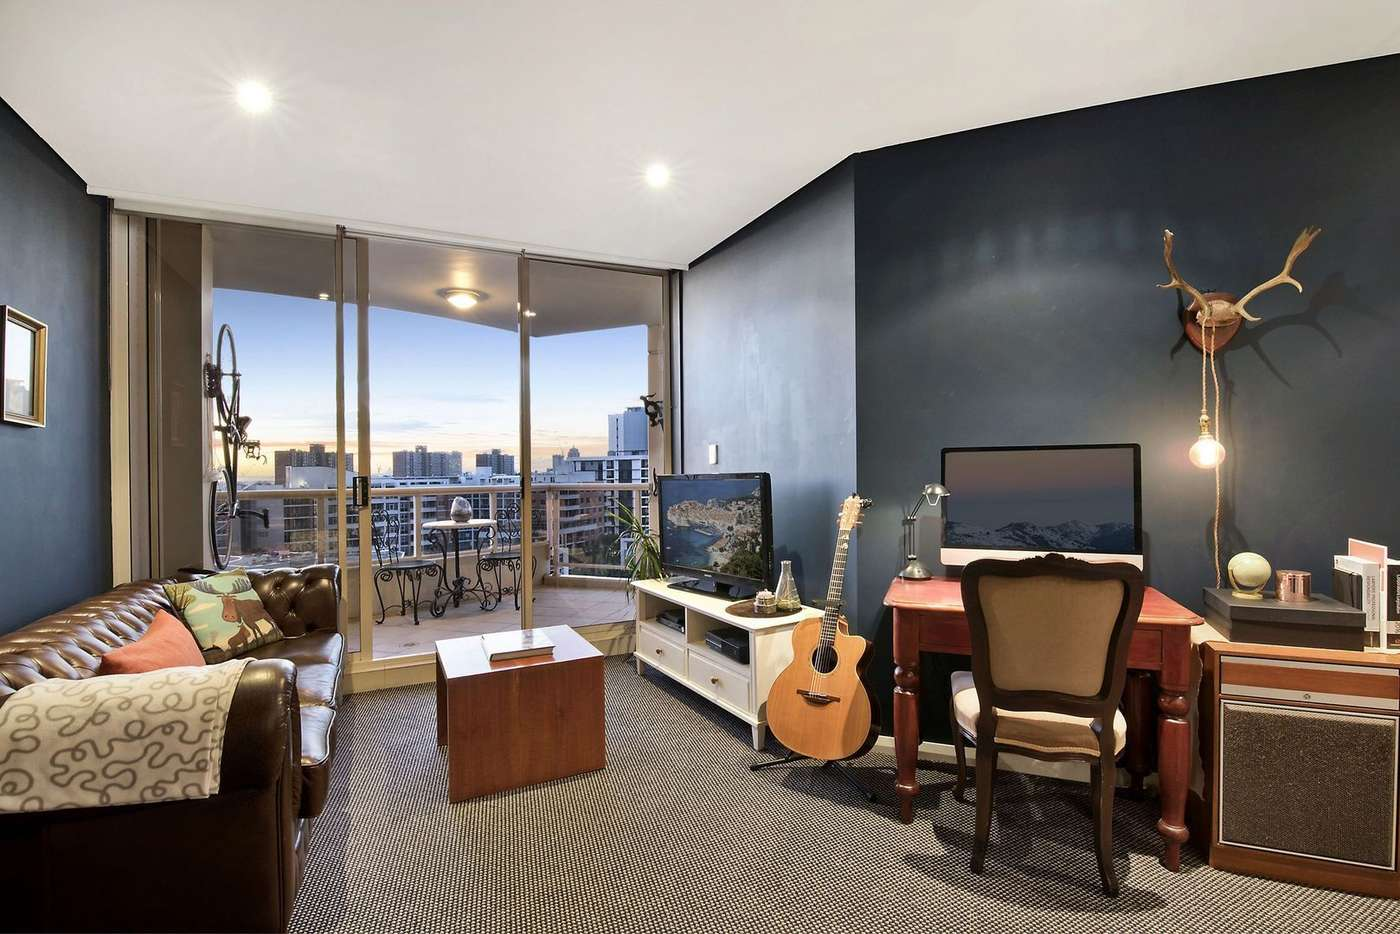 Main view of Homely apartment listing, 249/11 Potter Street, Waterloo NSW 2017